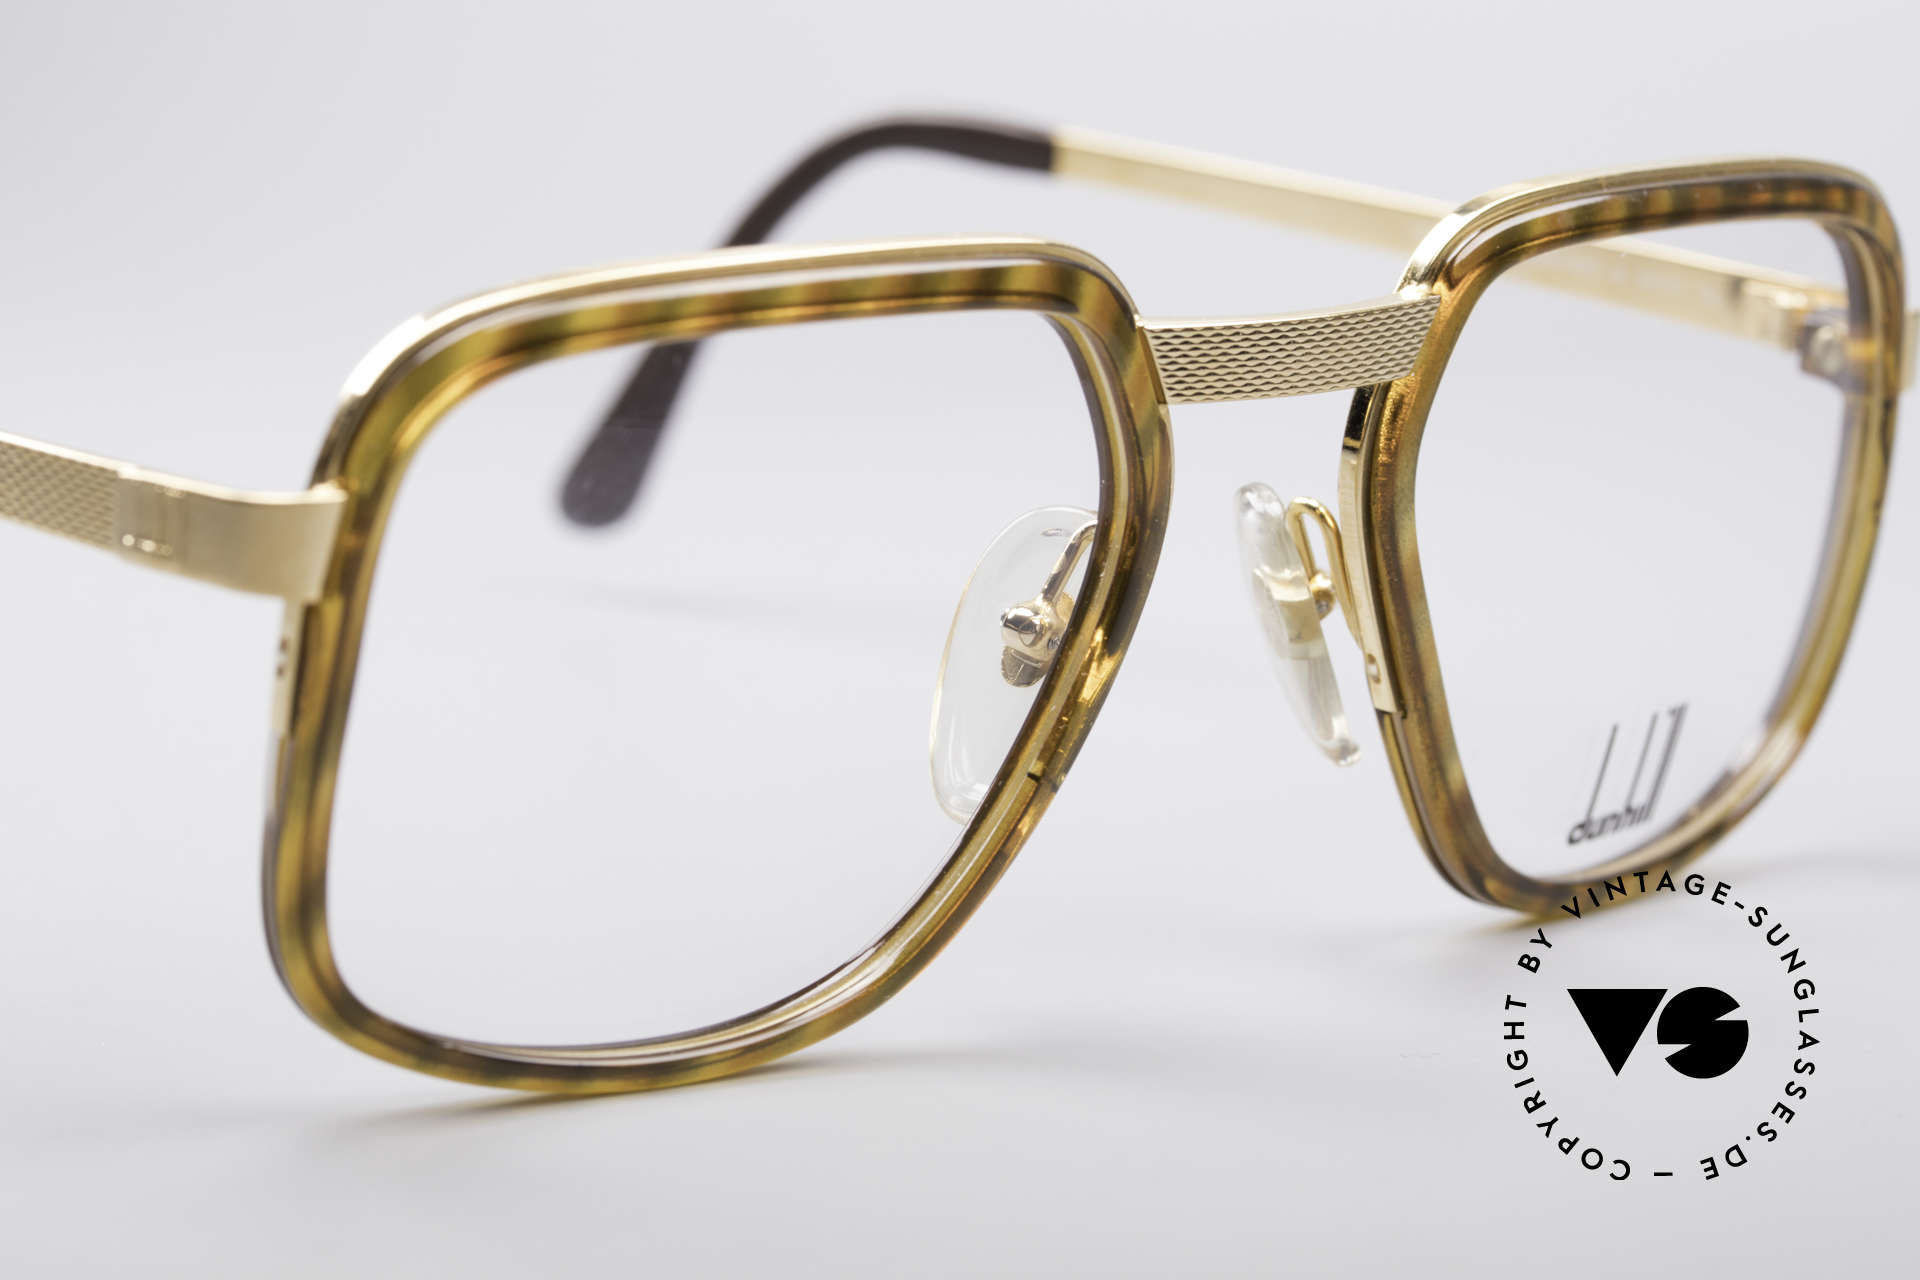 Dunhill 6073 Gold Plated 80's Glasses, new old stock (like all our vintage A. Dunhill eyewear), Made for Men